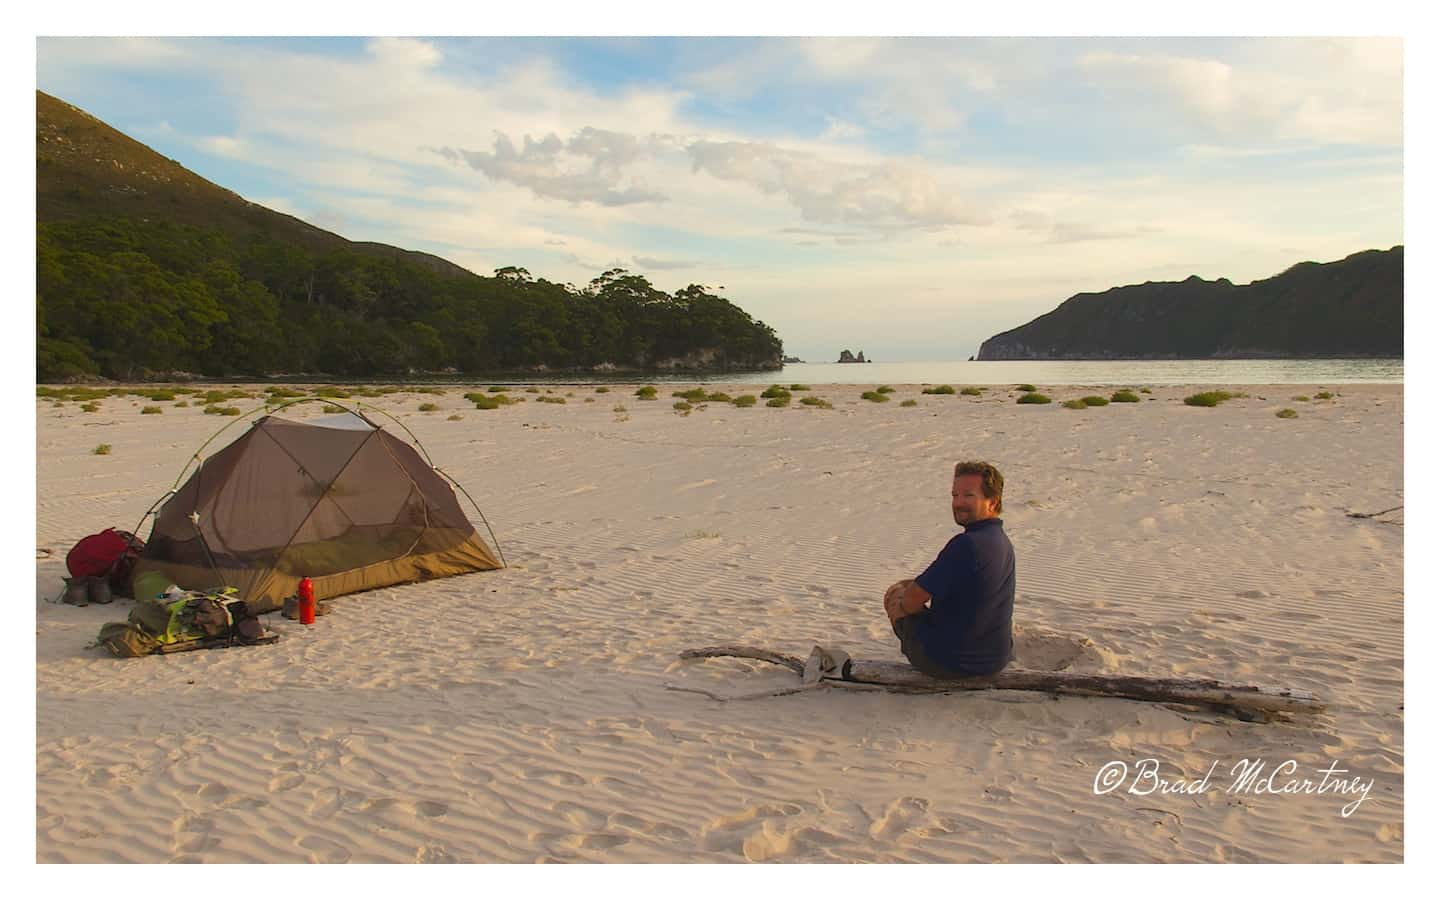 camping on the beach south west tasmania